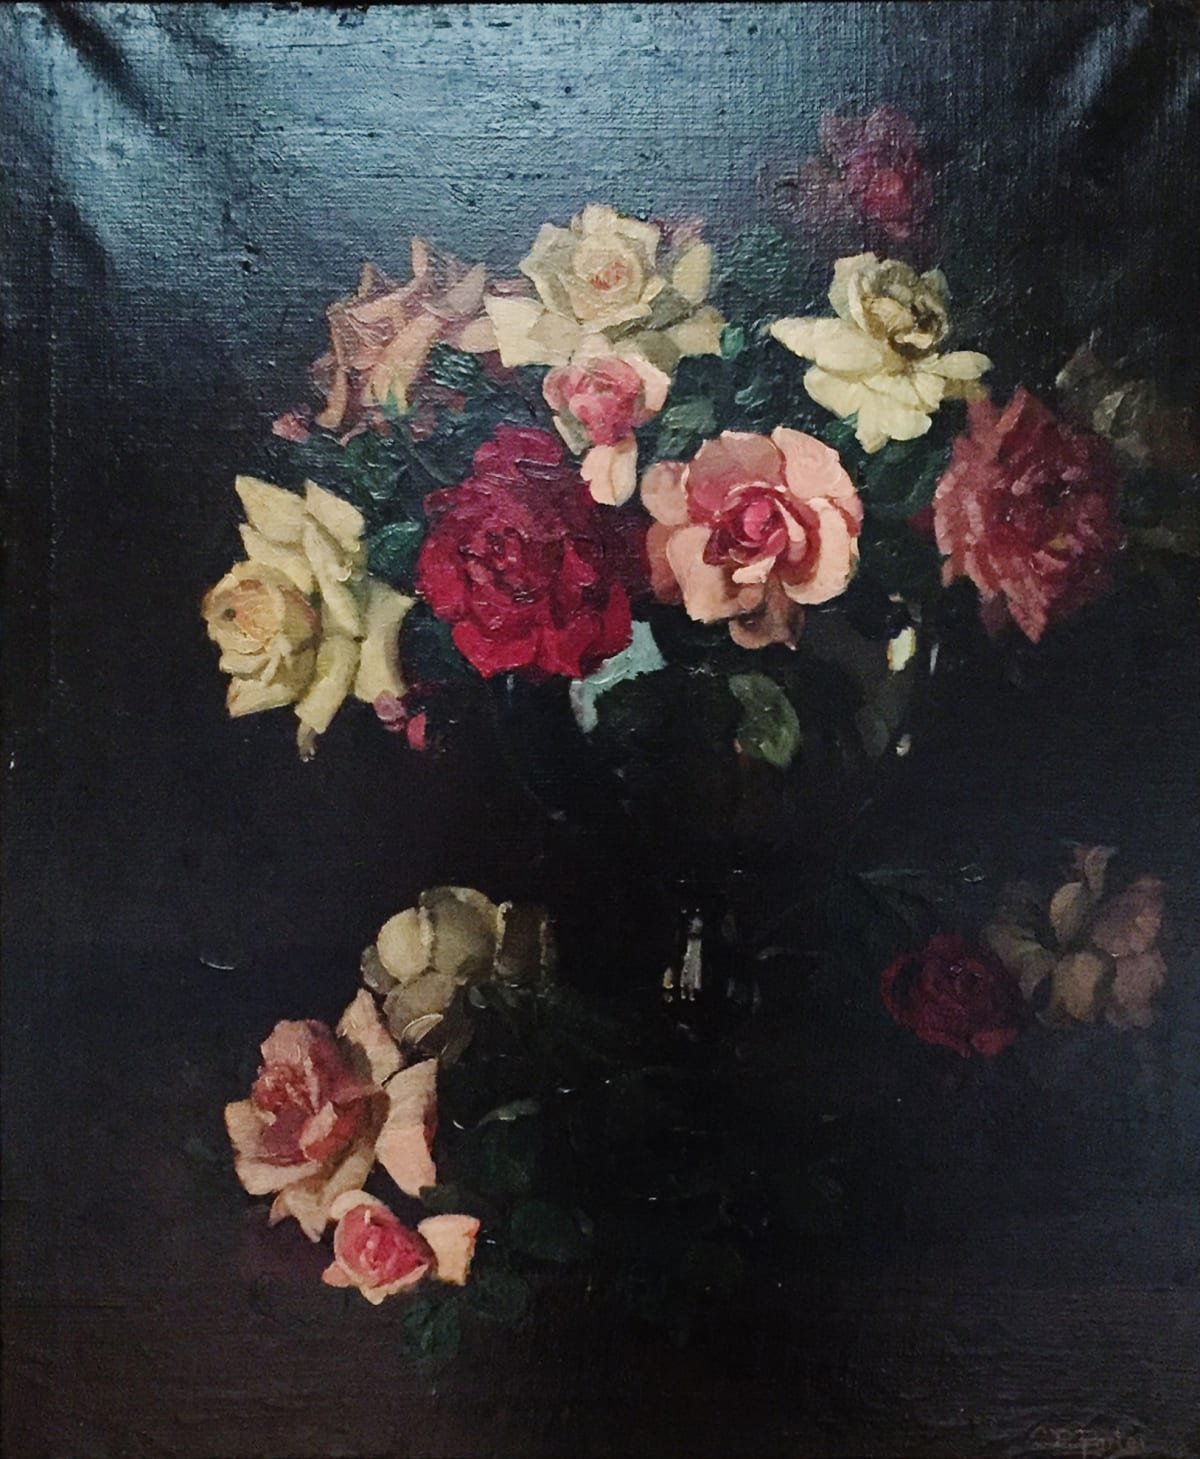 Charles Ethan Porter Untitled, (White and Pink Roses with Center Red Rose), 1850 Oil on Canvas Framed: 29 1/2 x 25 1/2 x 2 Unframed: 24 x 20